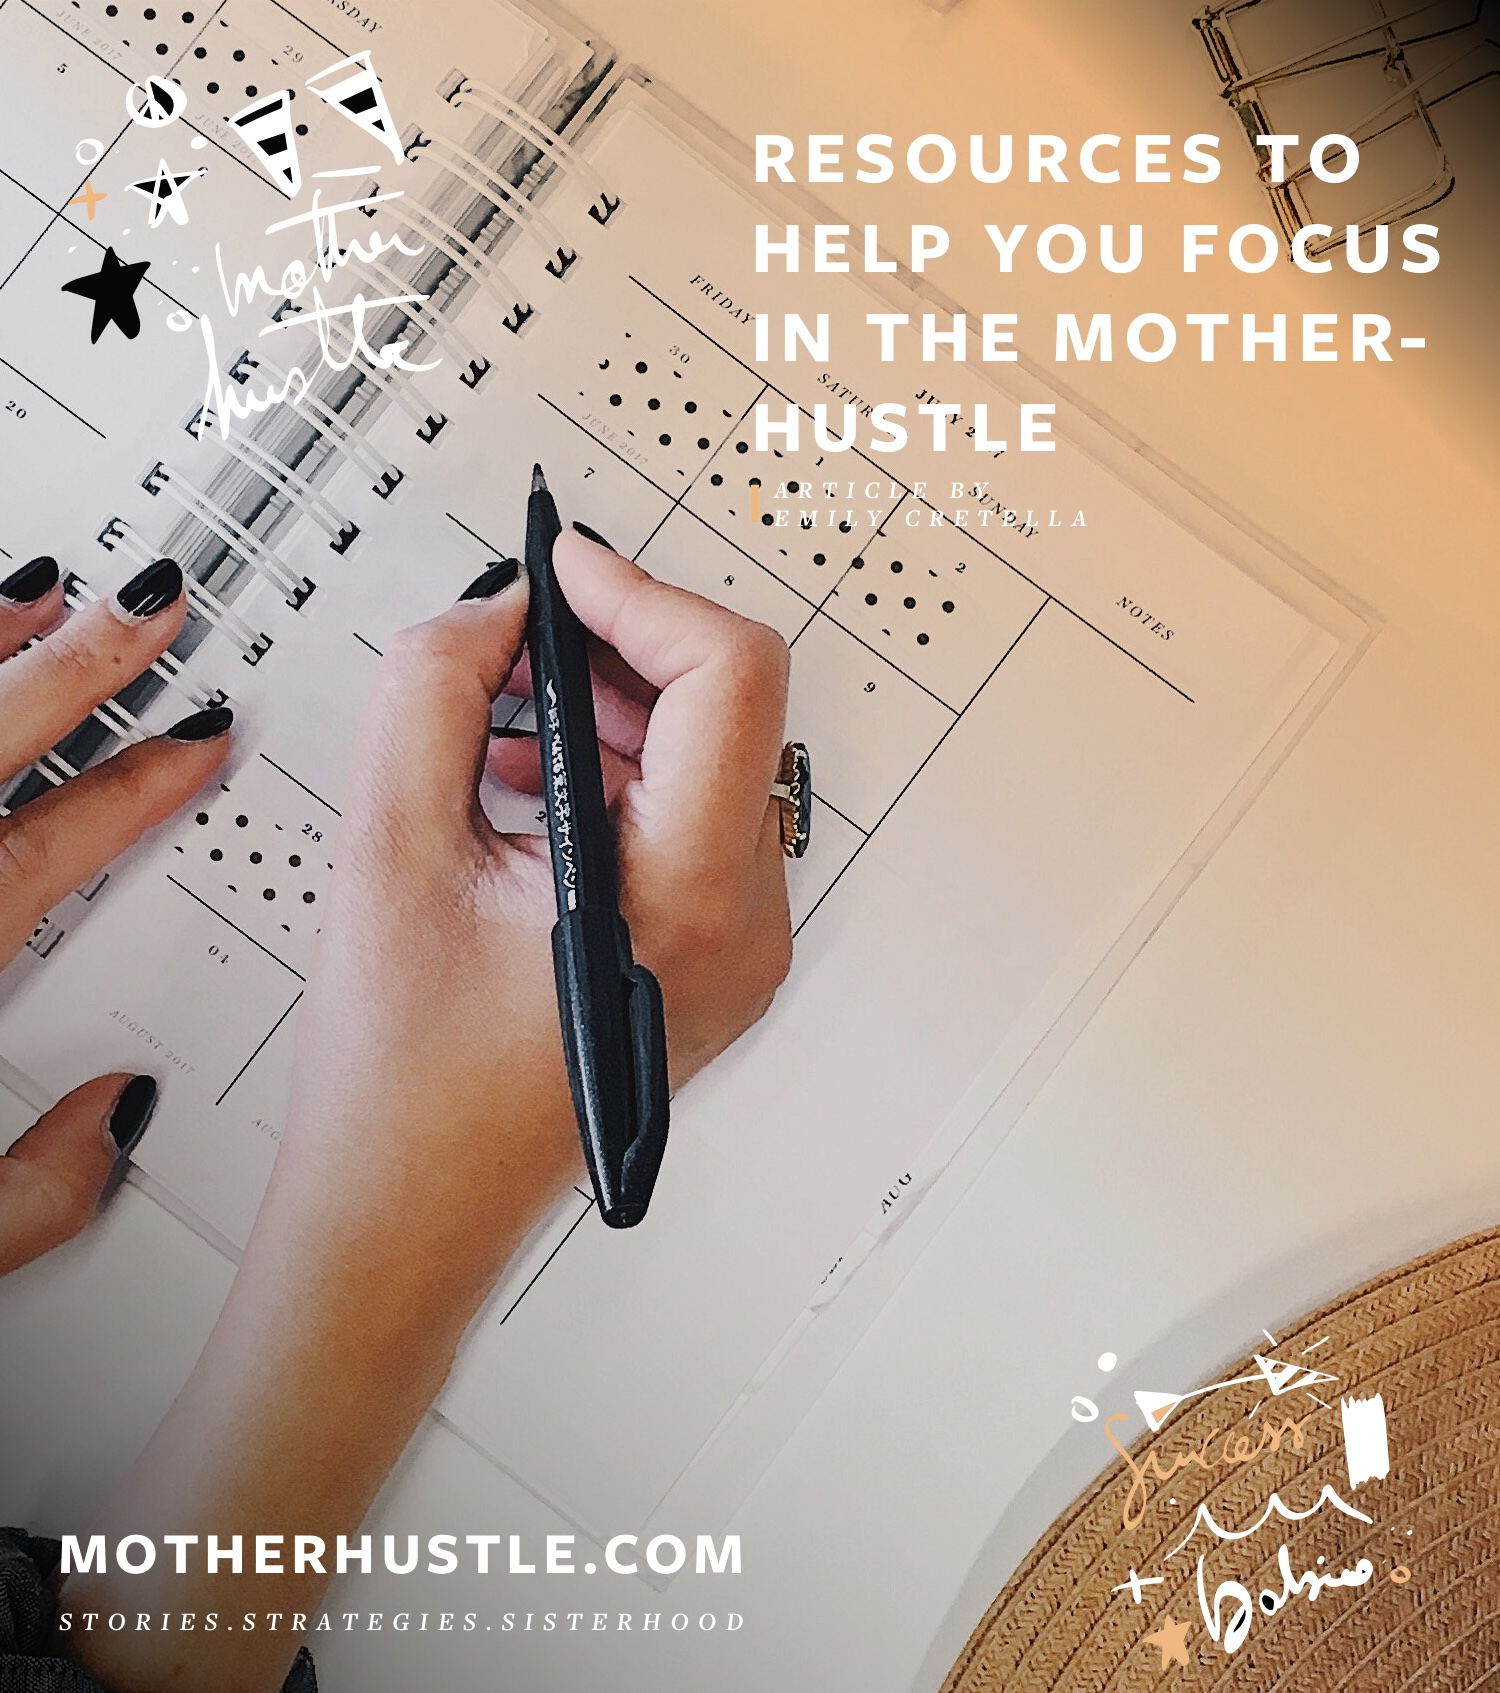 Resources to Help You Focus in the MotherHustle - BY EMILY CRETELLA